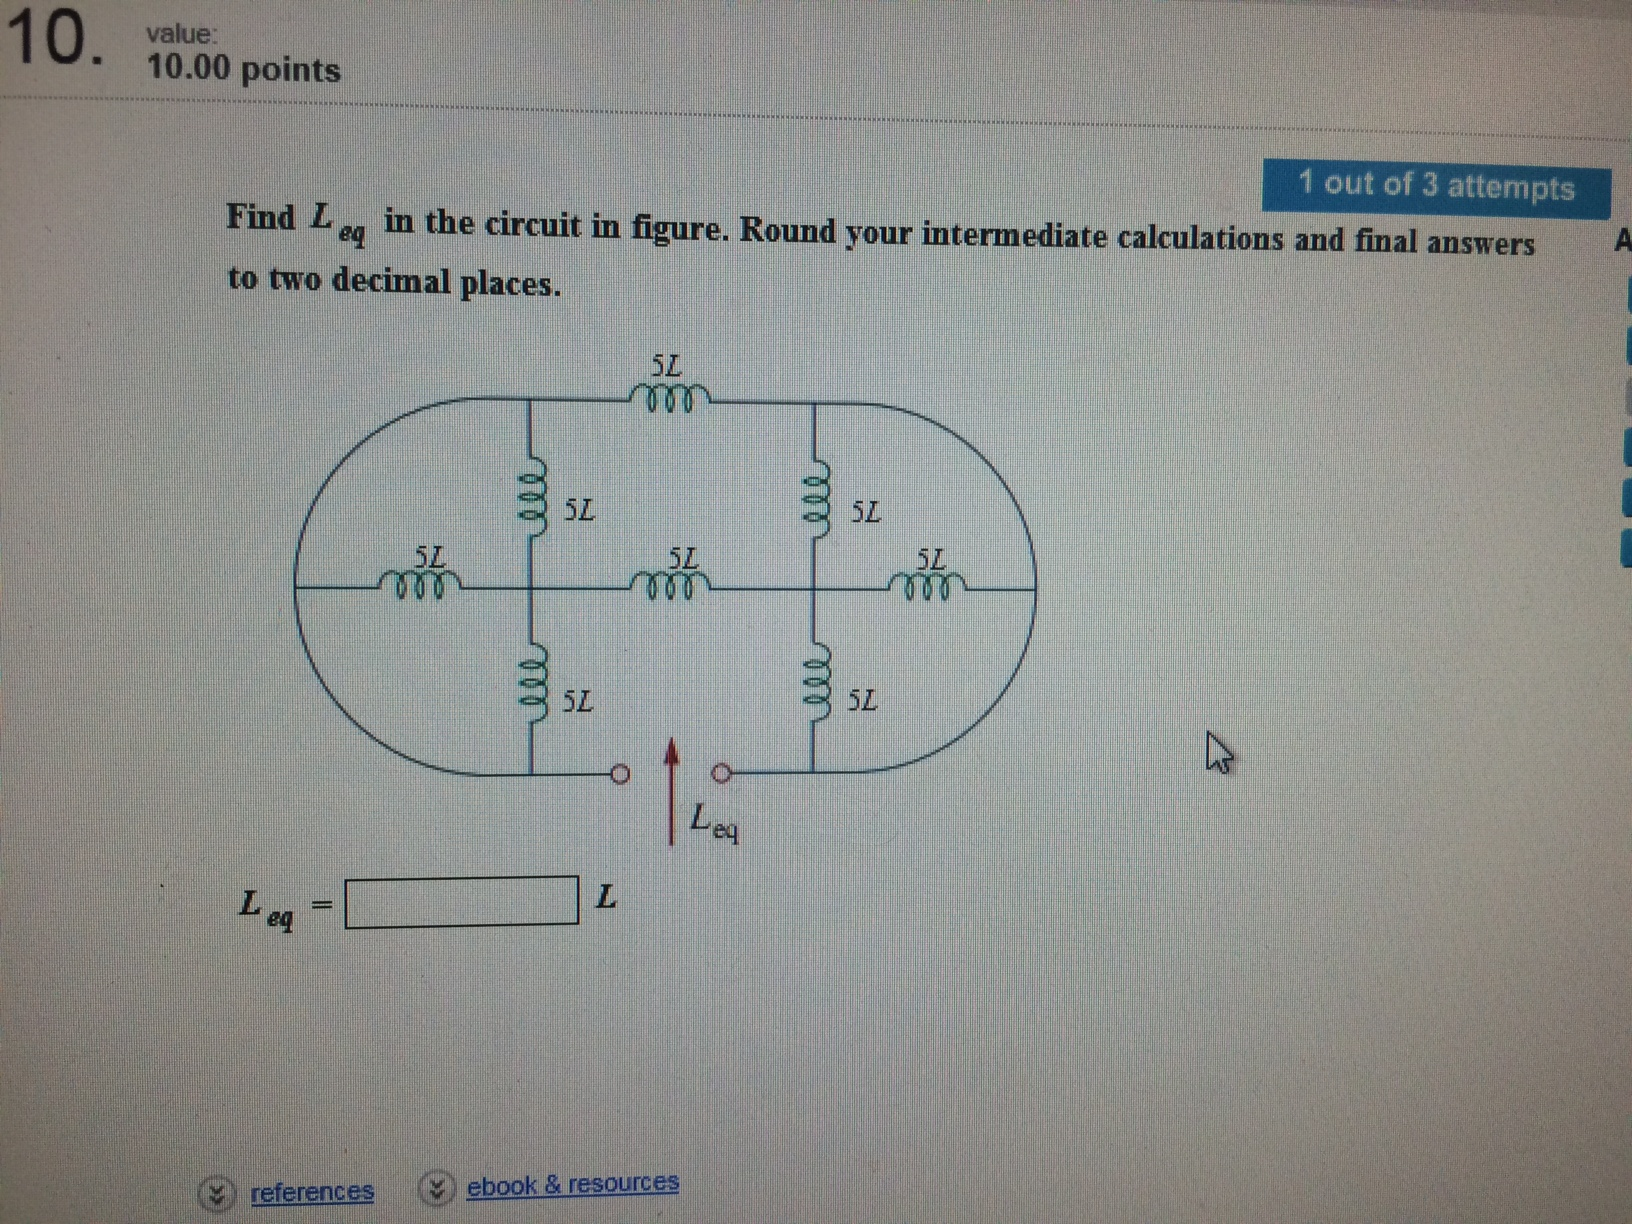 Electrical engineering archive march 23 2015 chegg image for find l eq in the circuit in figure round your intermediate calculations and fandeluxe Gallery